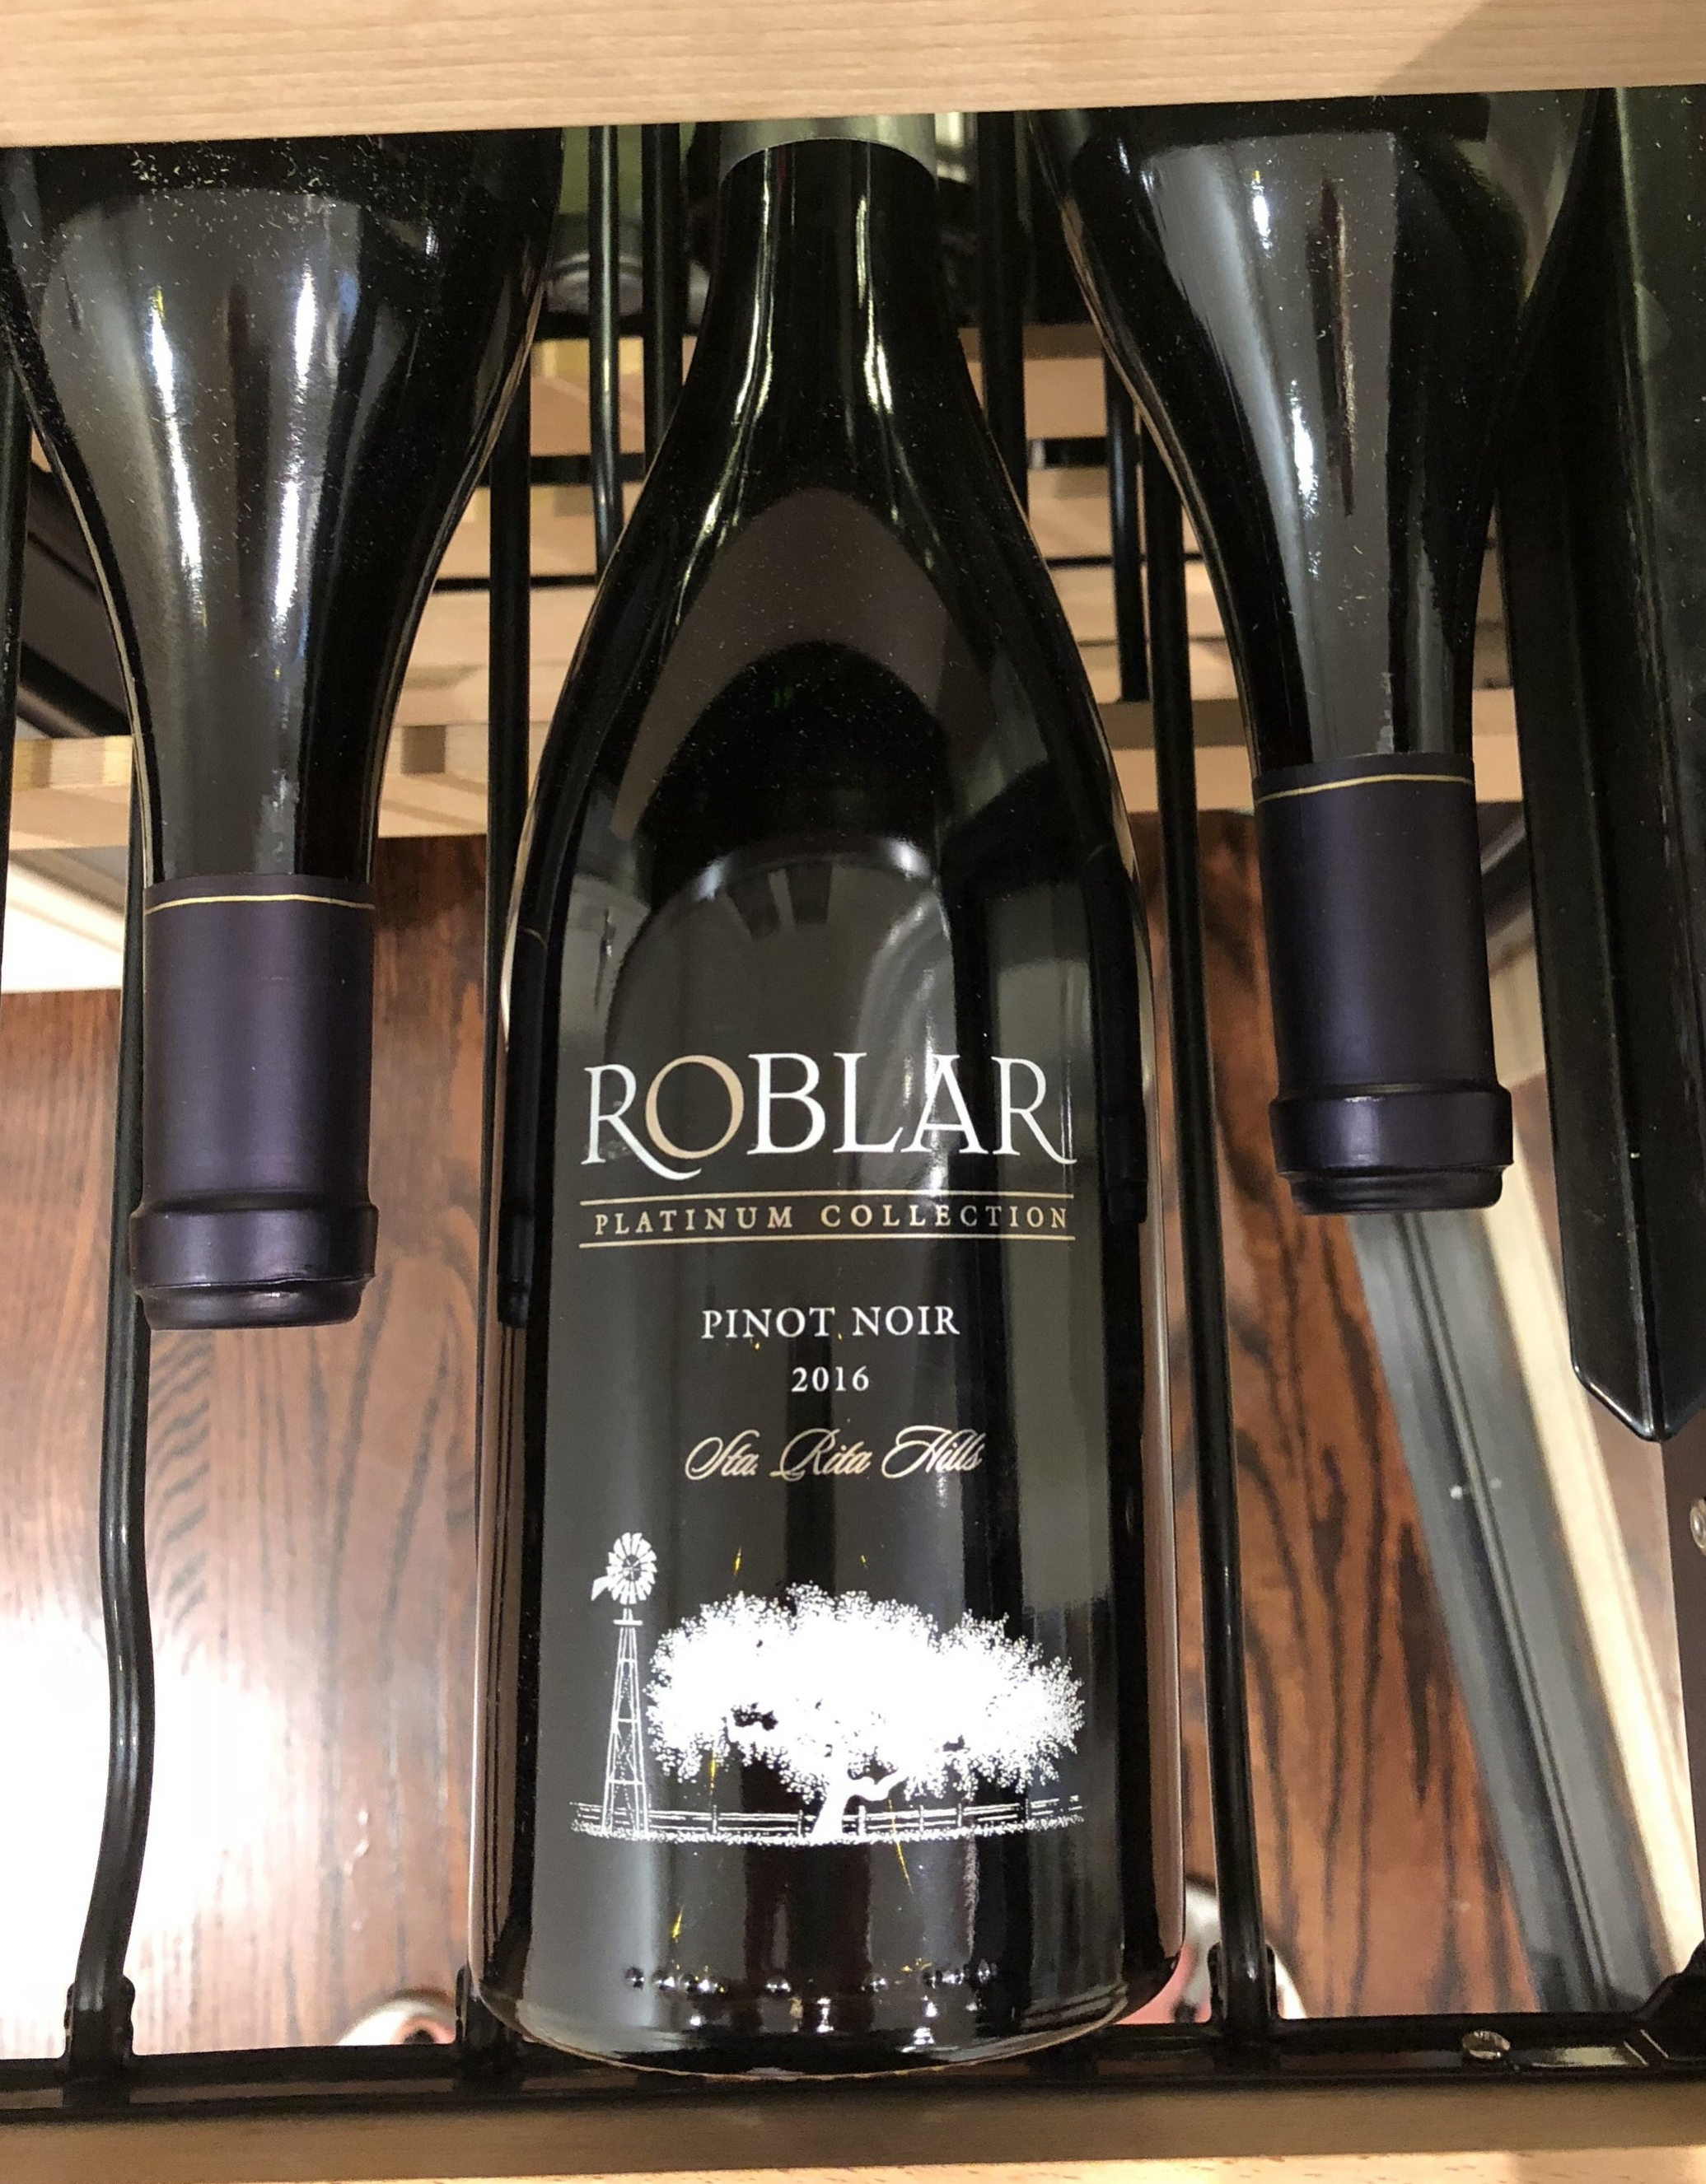 "Producers of great white and rose wine, Roblar shines in the Pinot Noir category. We chose this as a ""weekend evening"" wine."